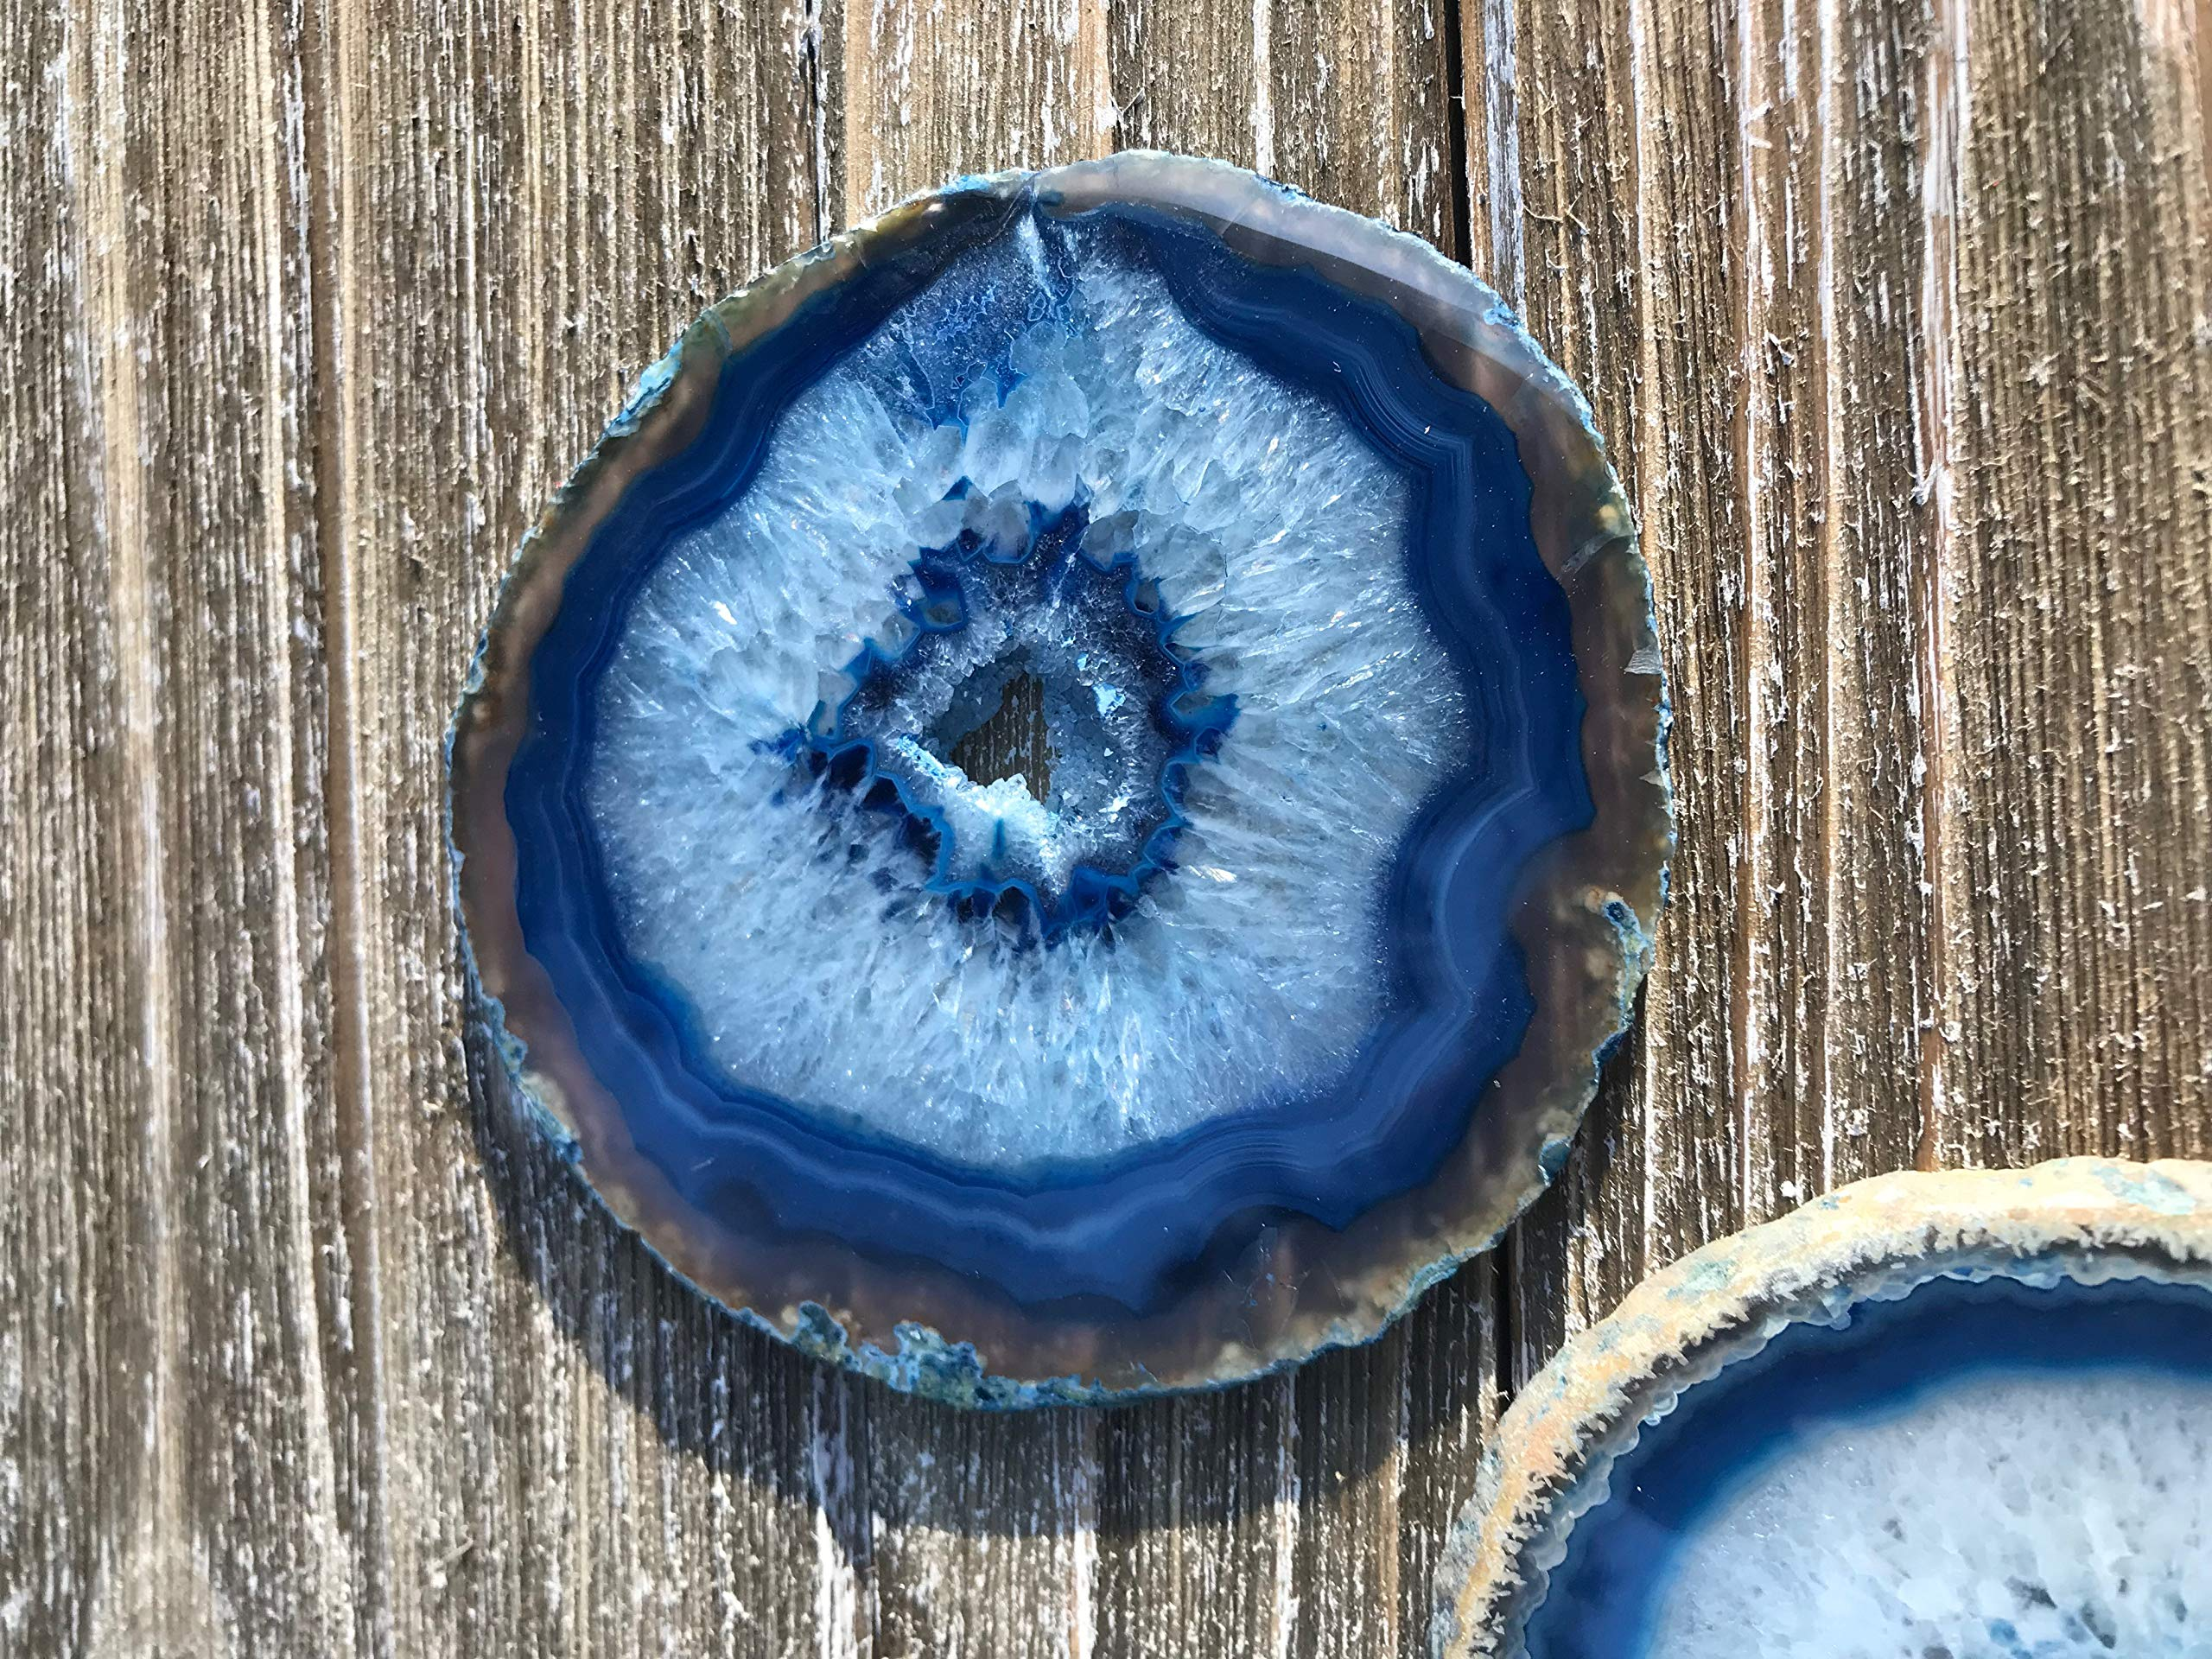 Agate Coasters set of 4 - Blue Colored Agate Coasters - Natural Rim - Bumpers by DashAlexandra